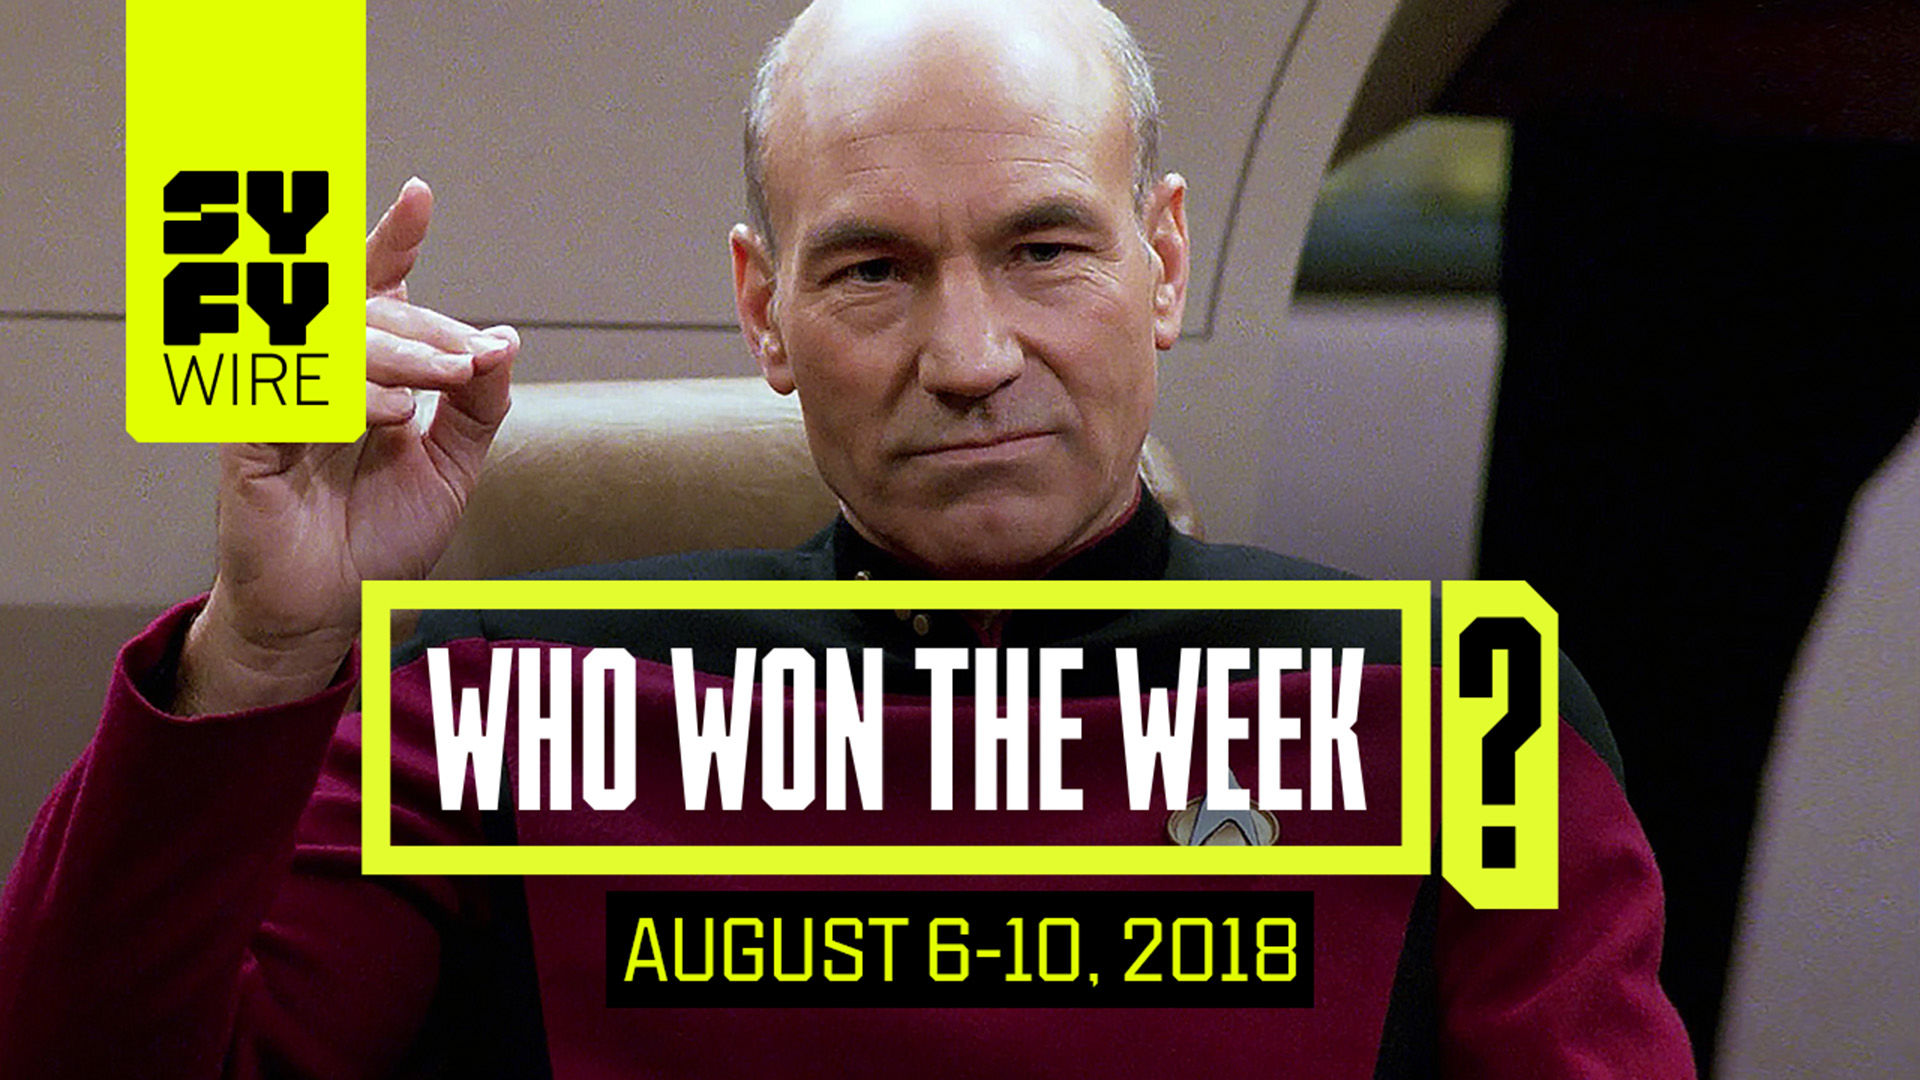 Picard Returns, Maniac, Canadian Hockey Dads: Who Won The Week For August 6-10